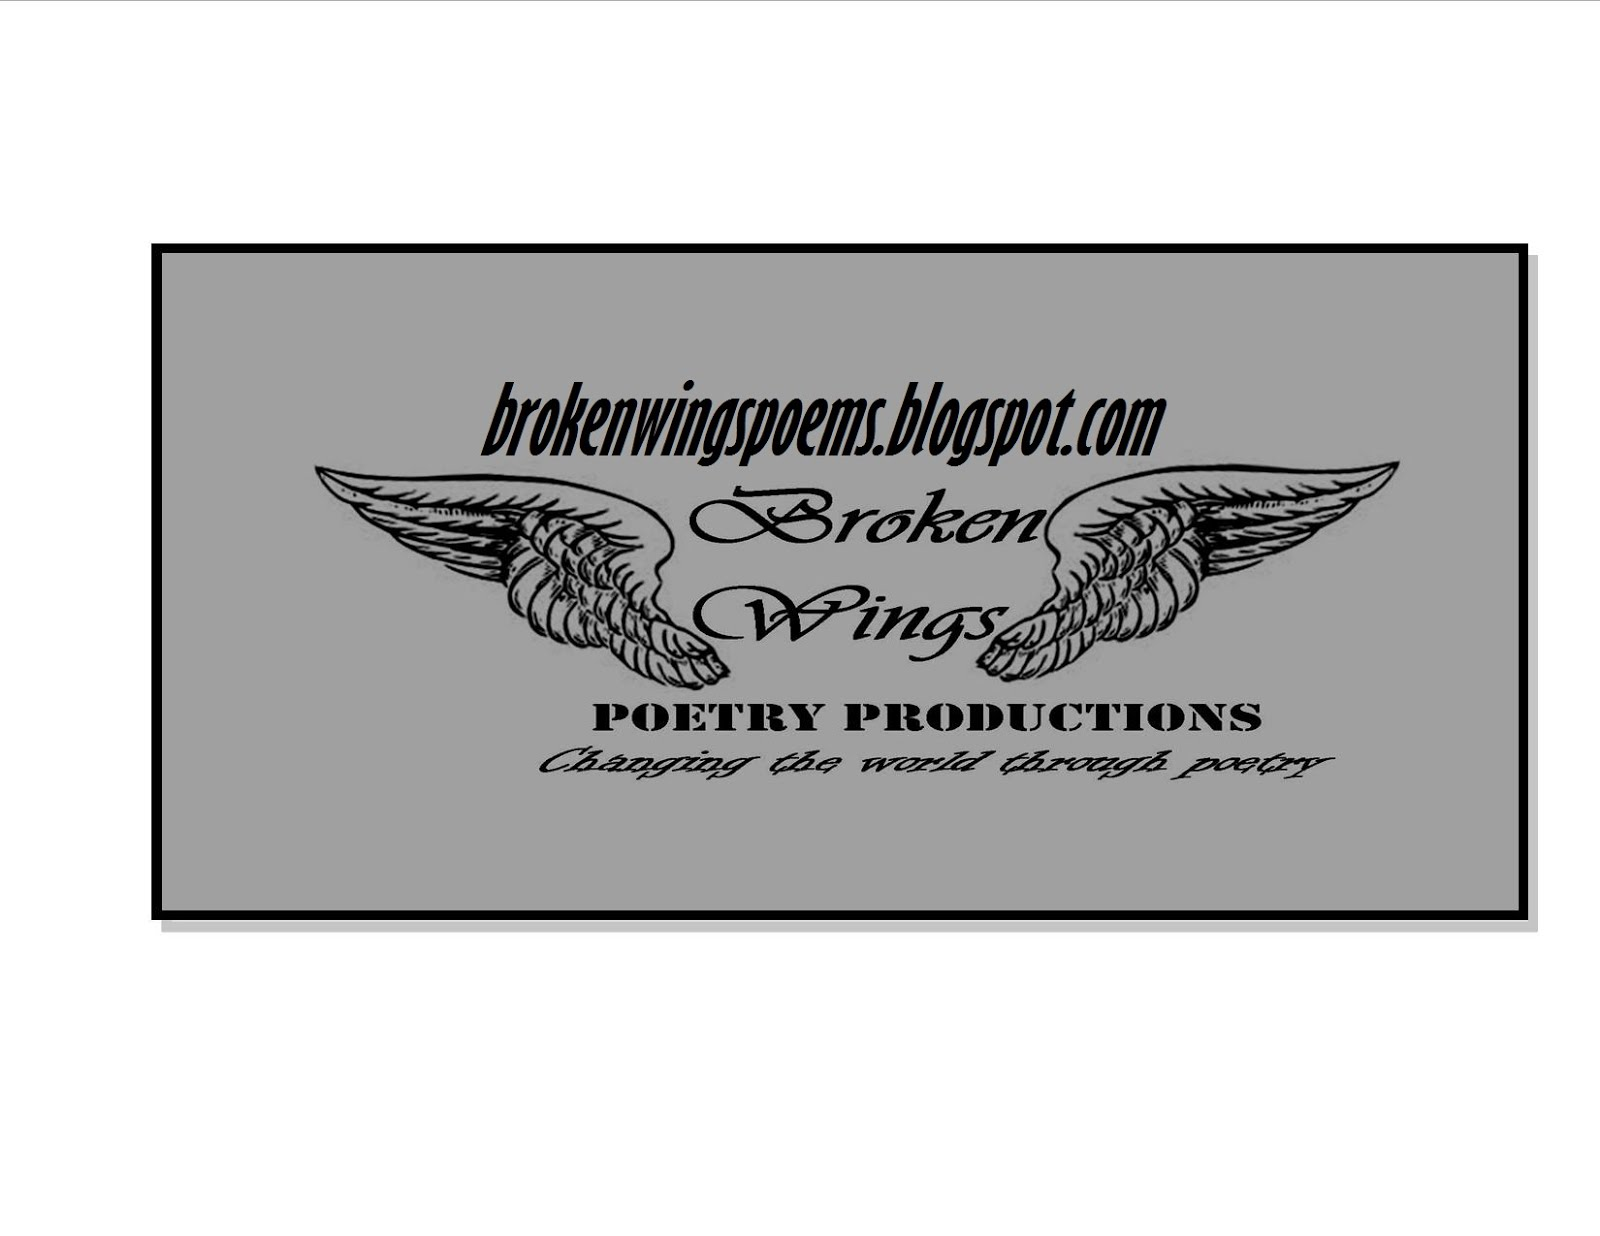 Broken Wings Poetry Productions